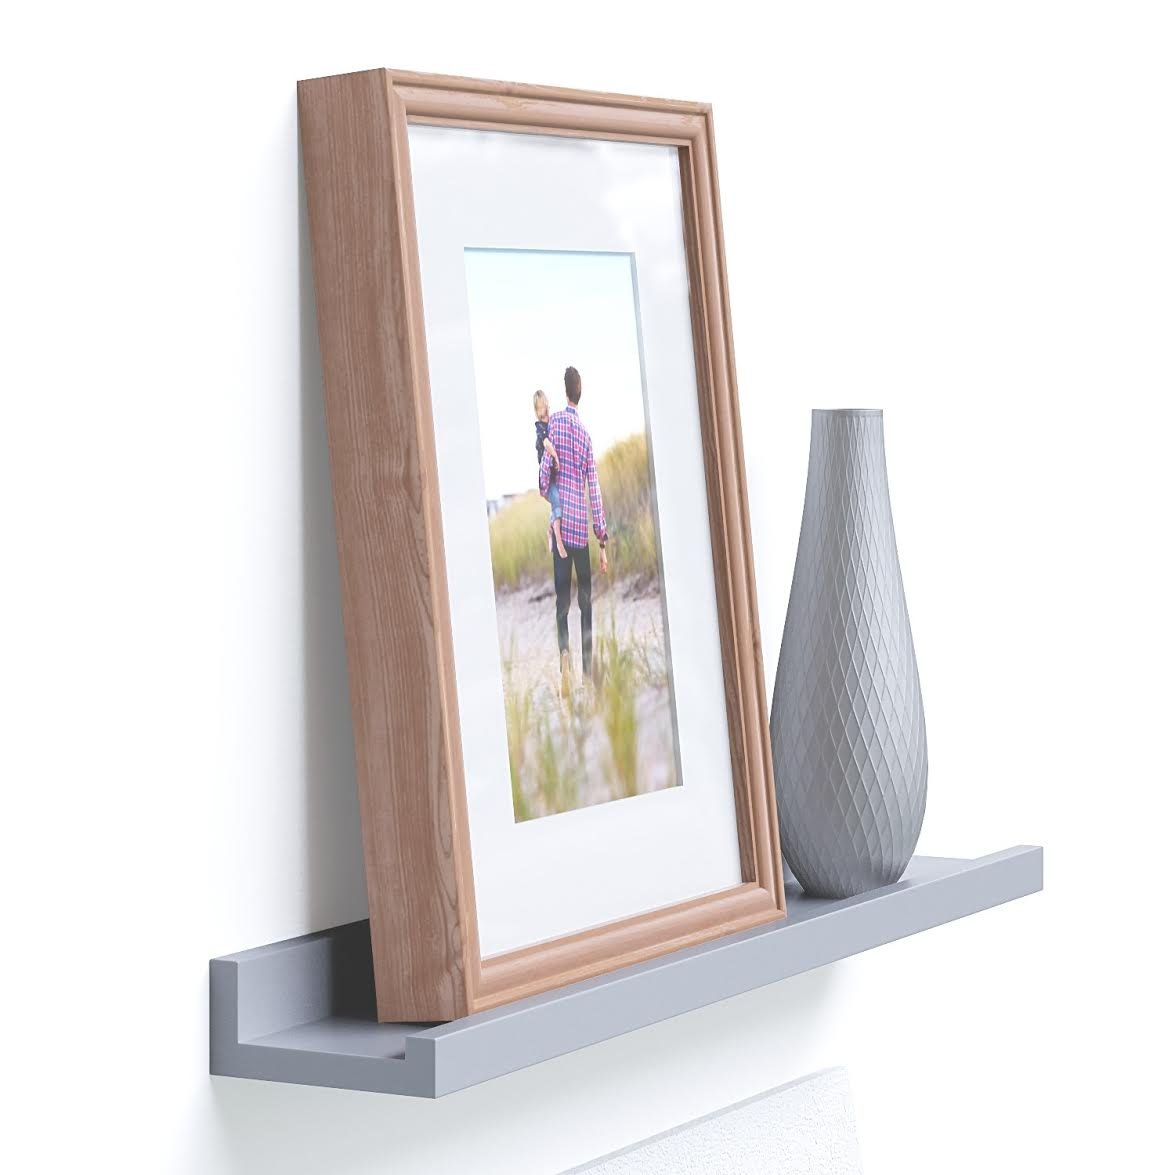 Amazon wallniture modern design floating picture display amazon wallniture modern design floating picture display ledge wall mountable shelf 22 inches long gray home kitchen jeuxipadfo Gallery